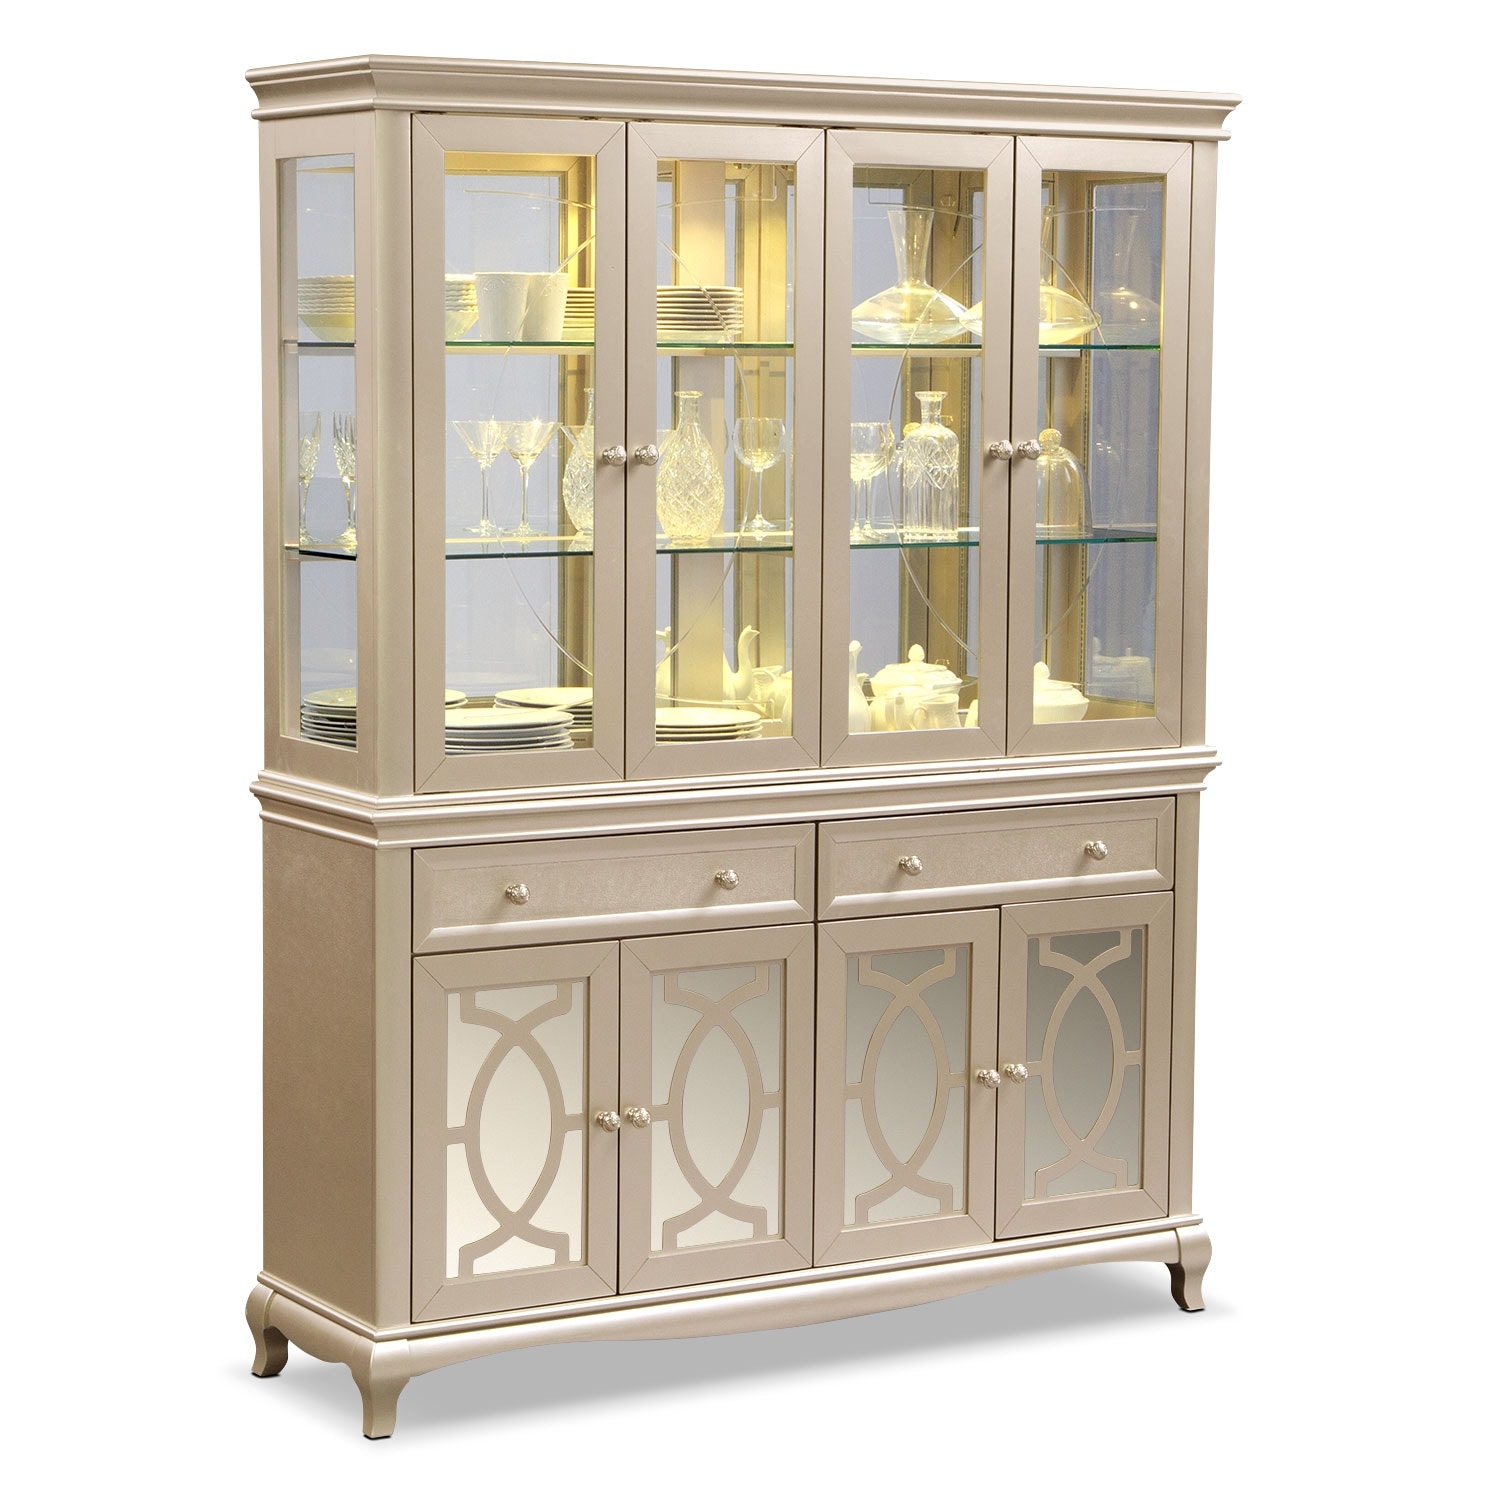 Office Daybed Office Daybed Homefulco 83Powder Room Furniture